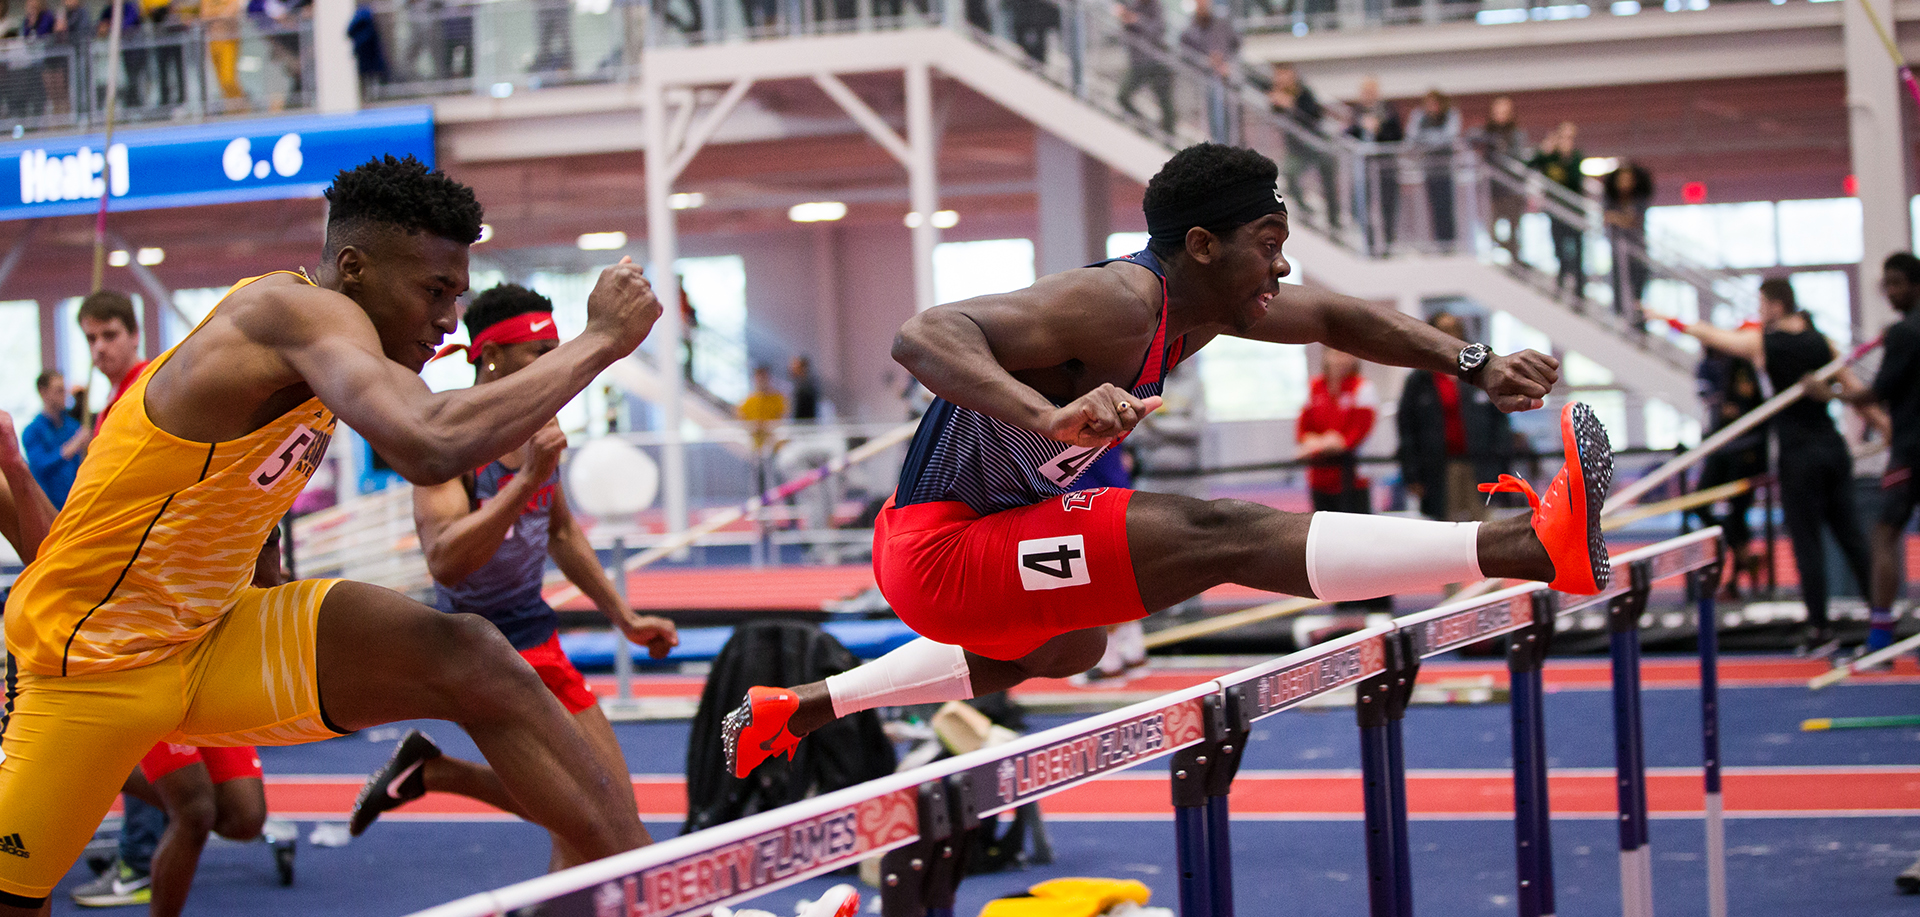 Jovaine Atkinson ran a Liberty-record 110 hurdles time of 14.01 seconds at the Gamecock Invitational on Saturday.